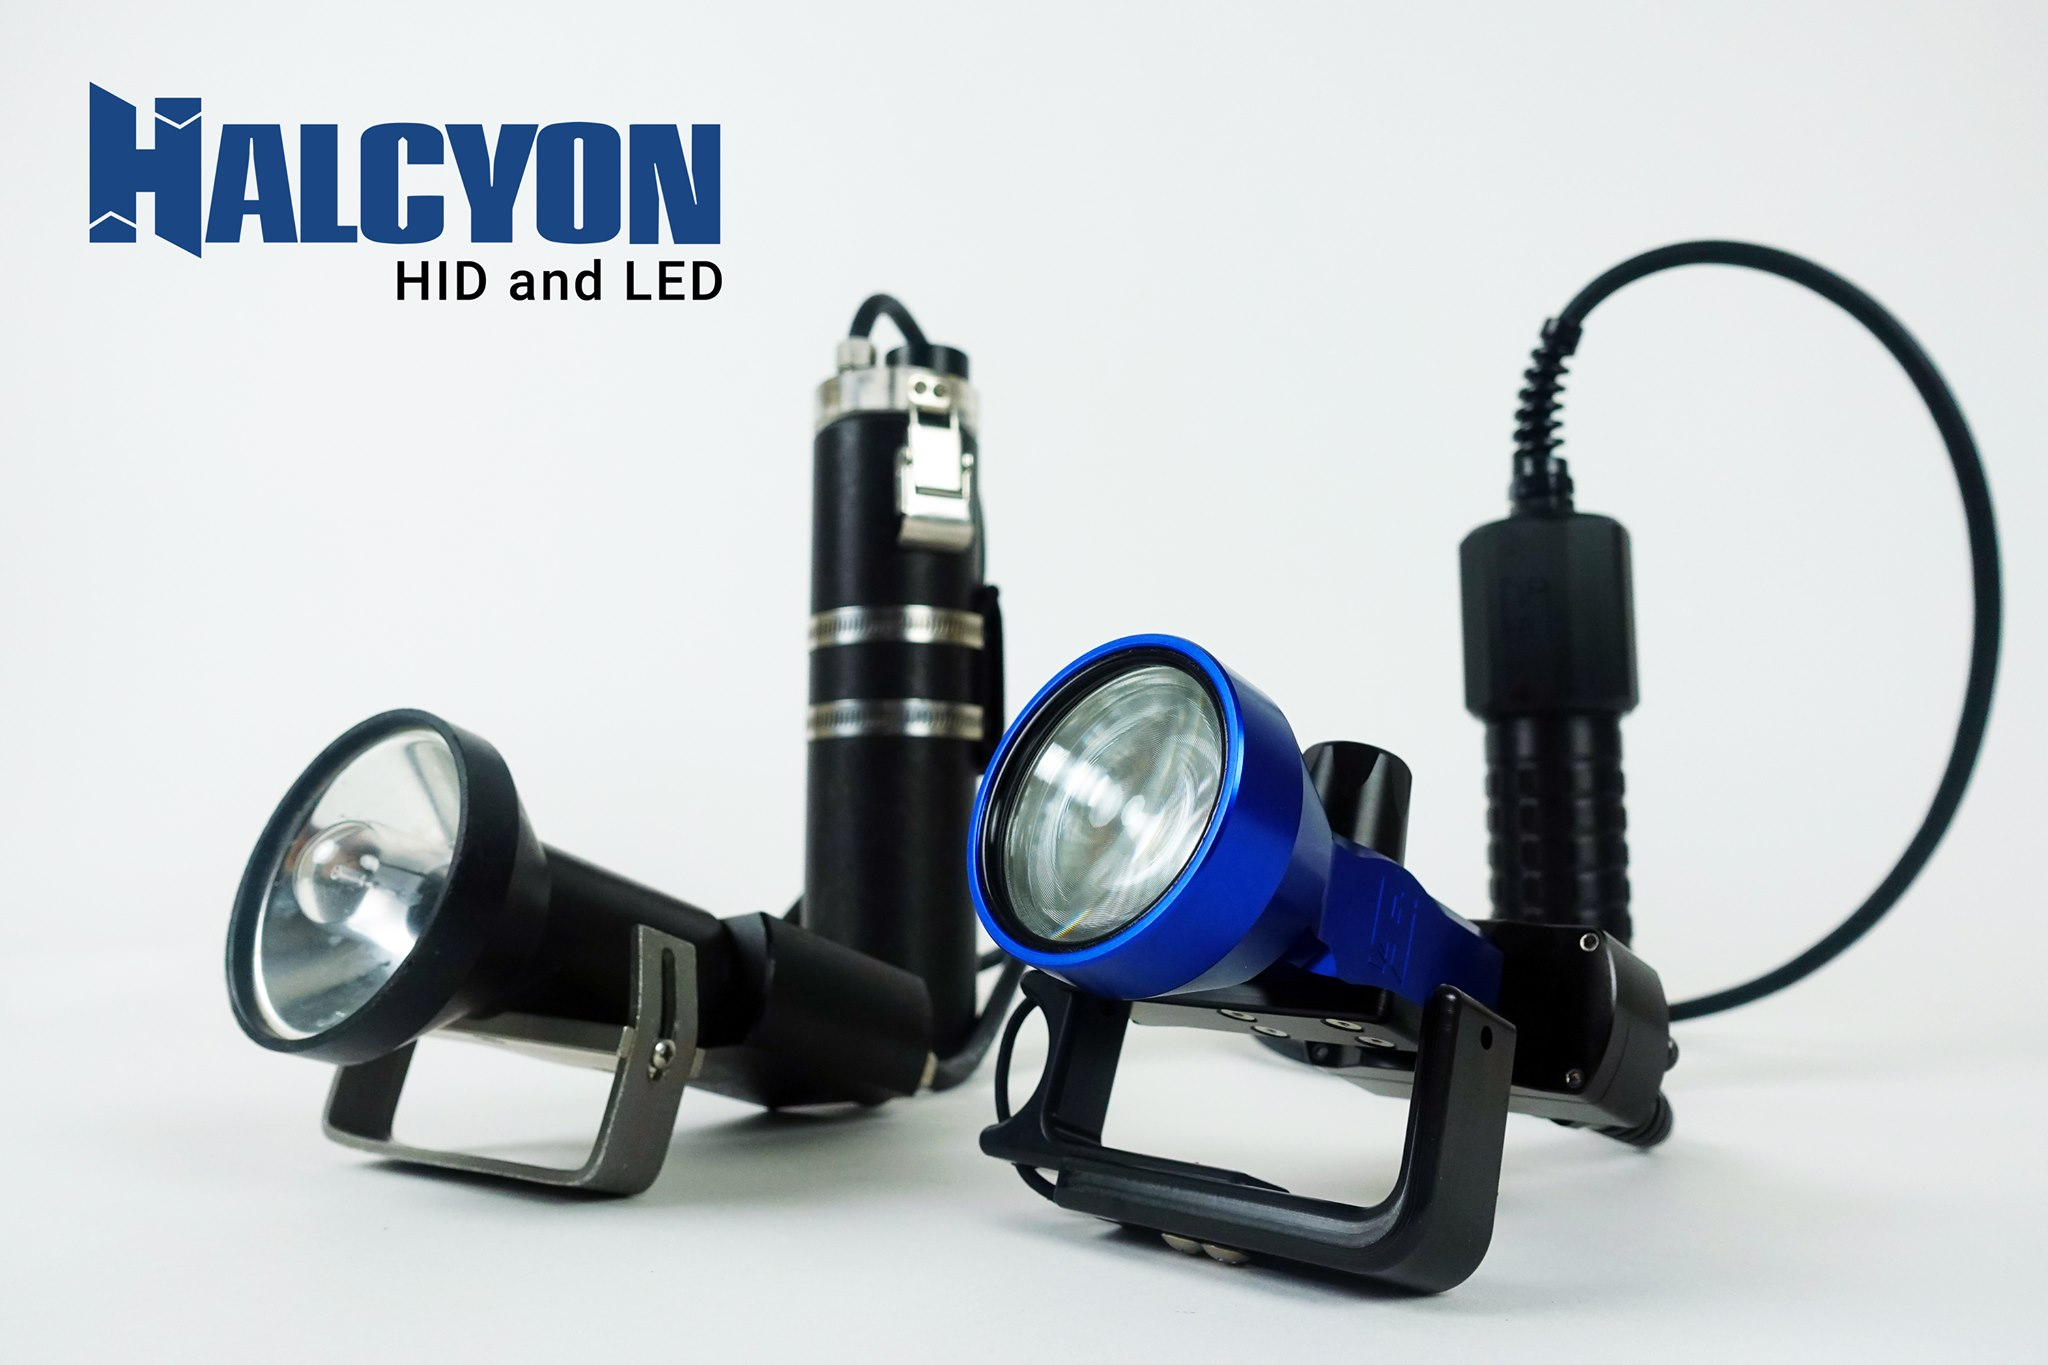 WHAT IS THE DIFFERENCE BETWEEN HID AND LED LIGHTING?